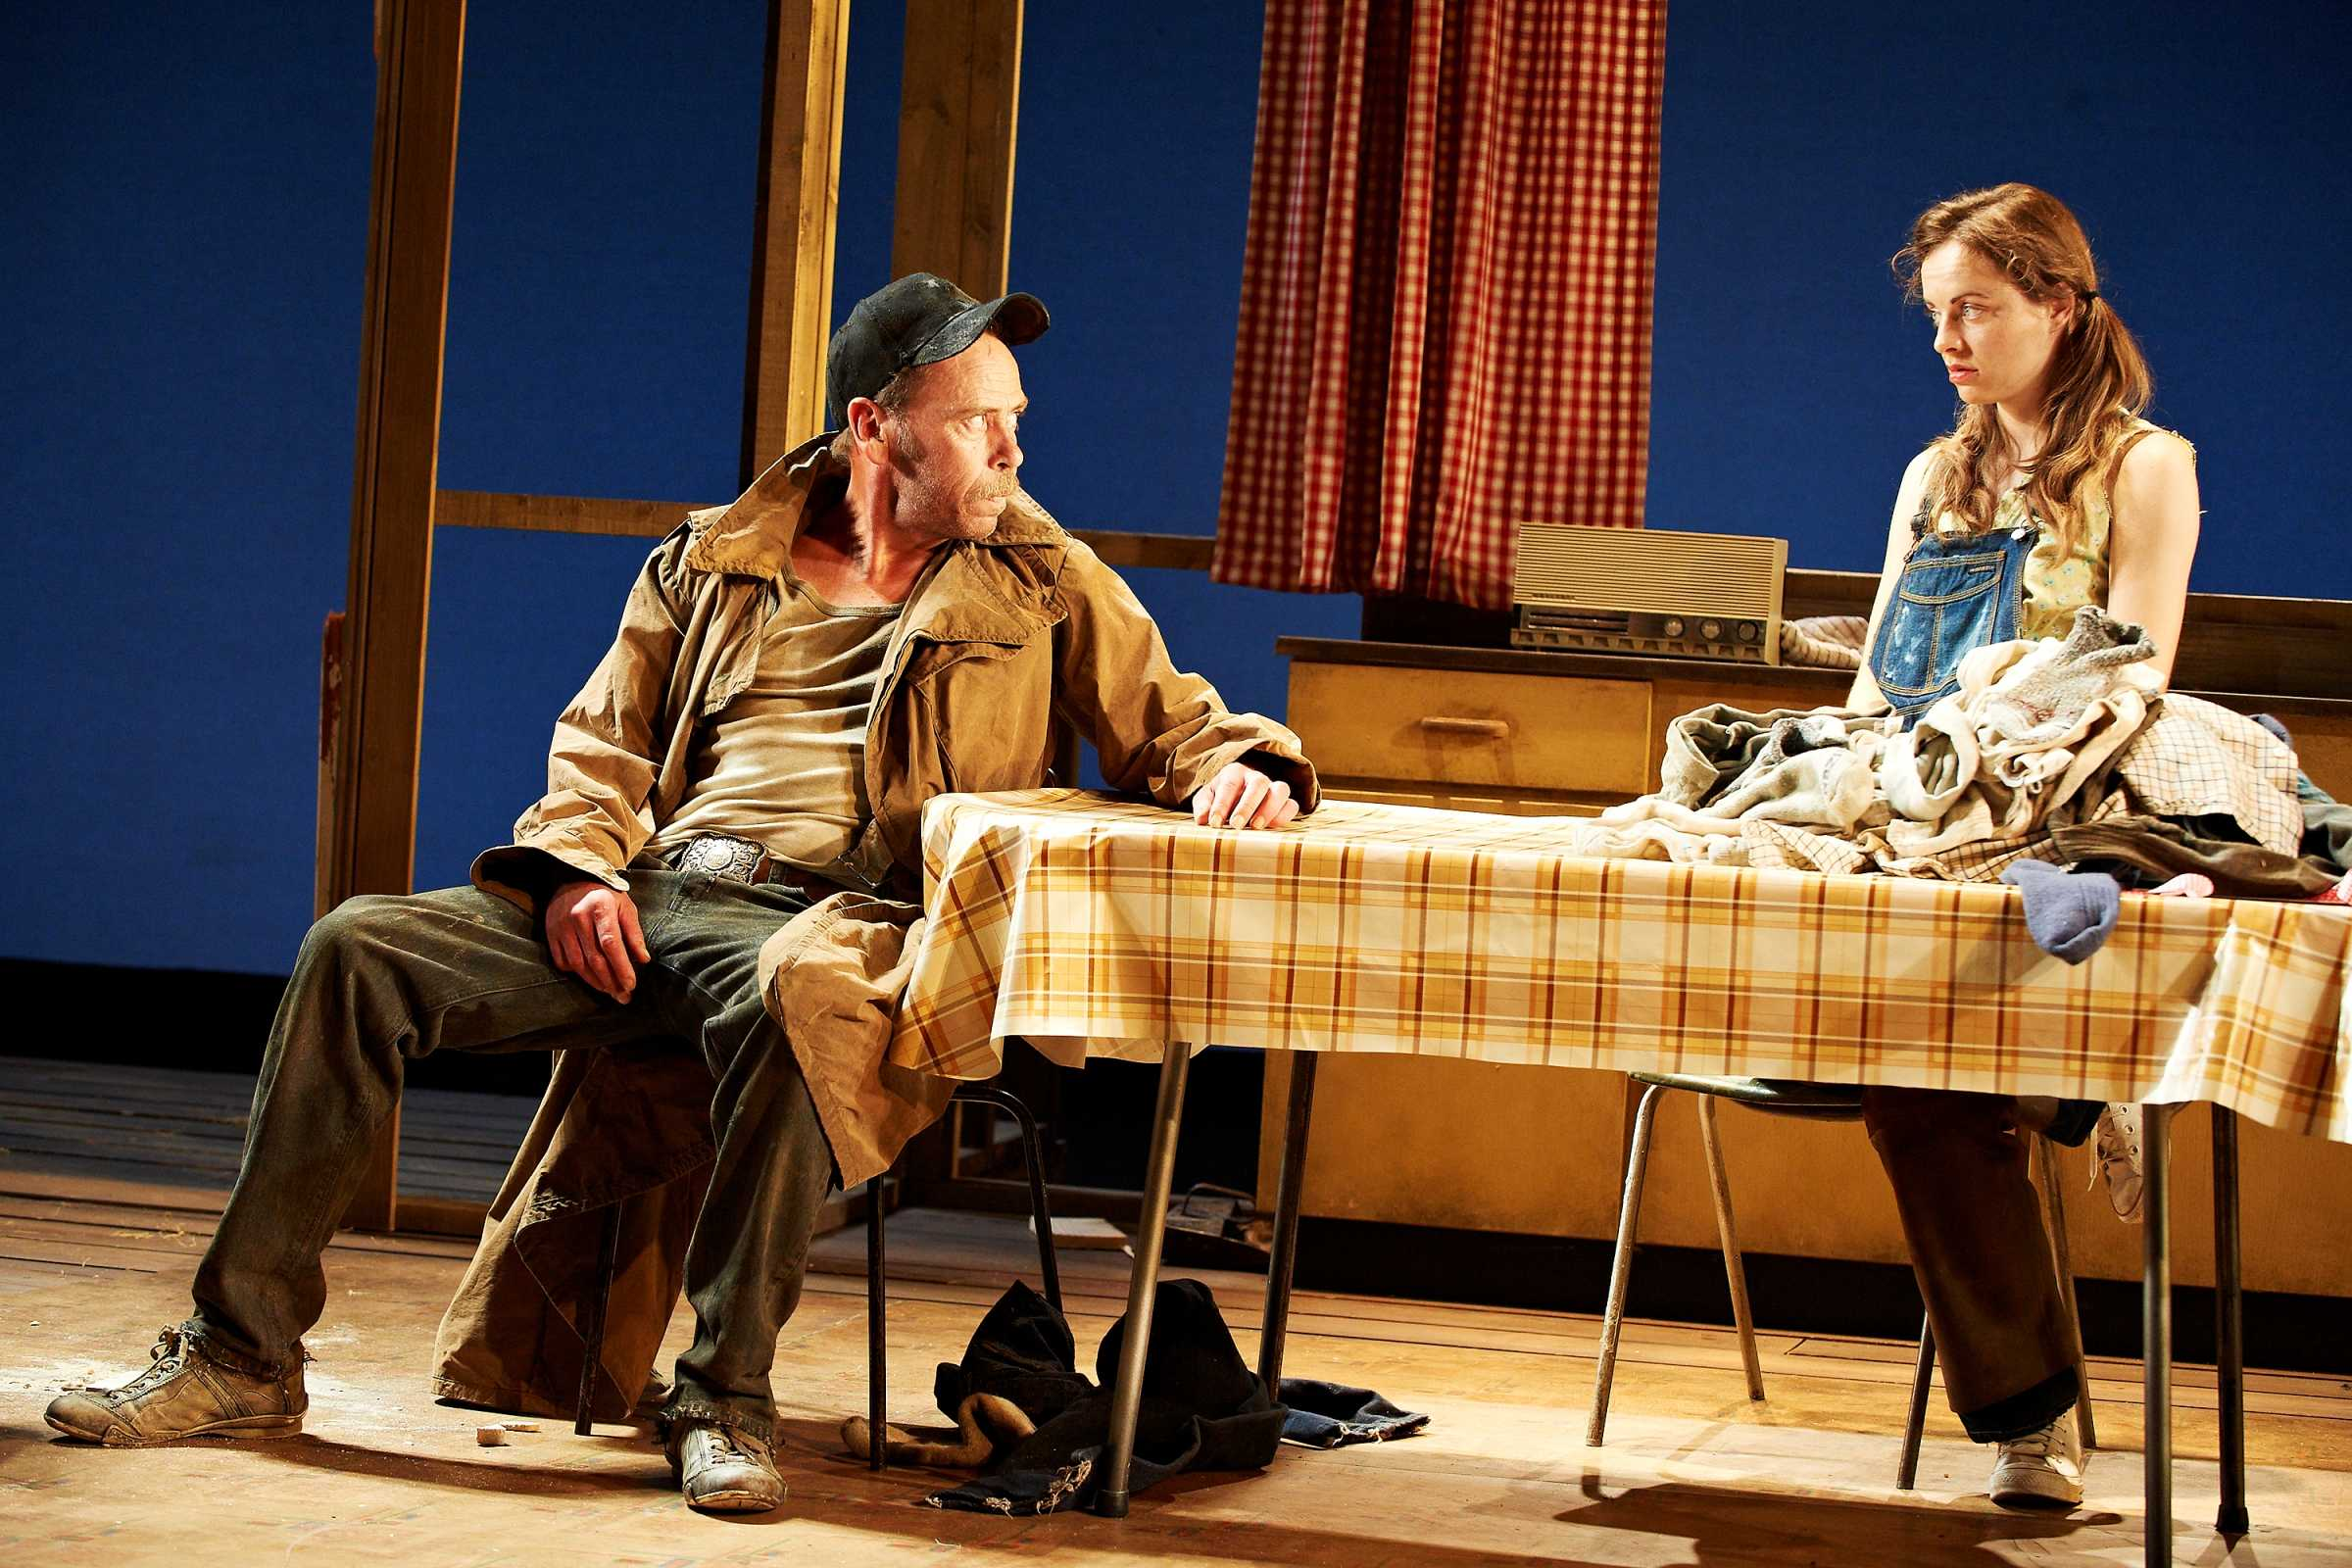 an examination of curse of the starving class Curse of the starving class by sam shepard a darkly comic exploration of the american family psyche, this obie award-winning play is an expository look at the four members of the tate family who live on a half-neglected farm in rural california.